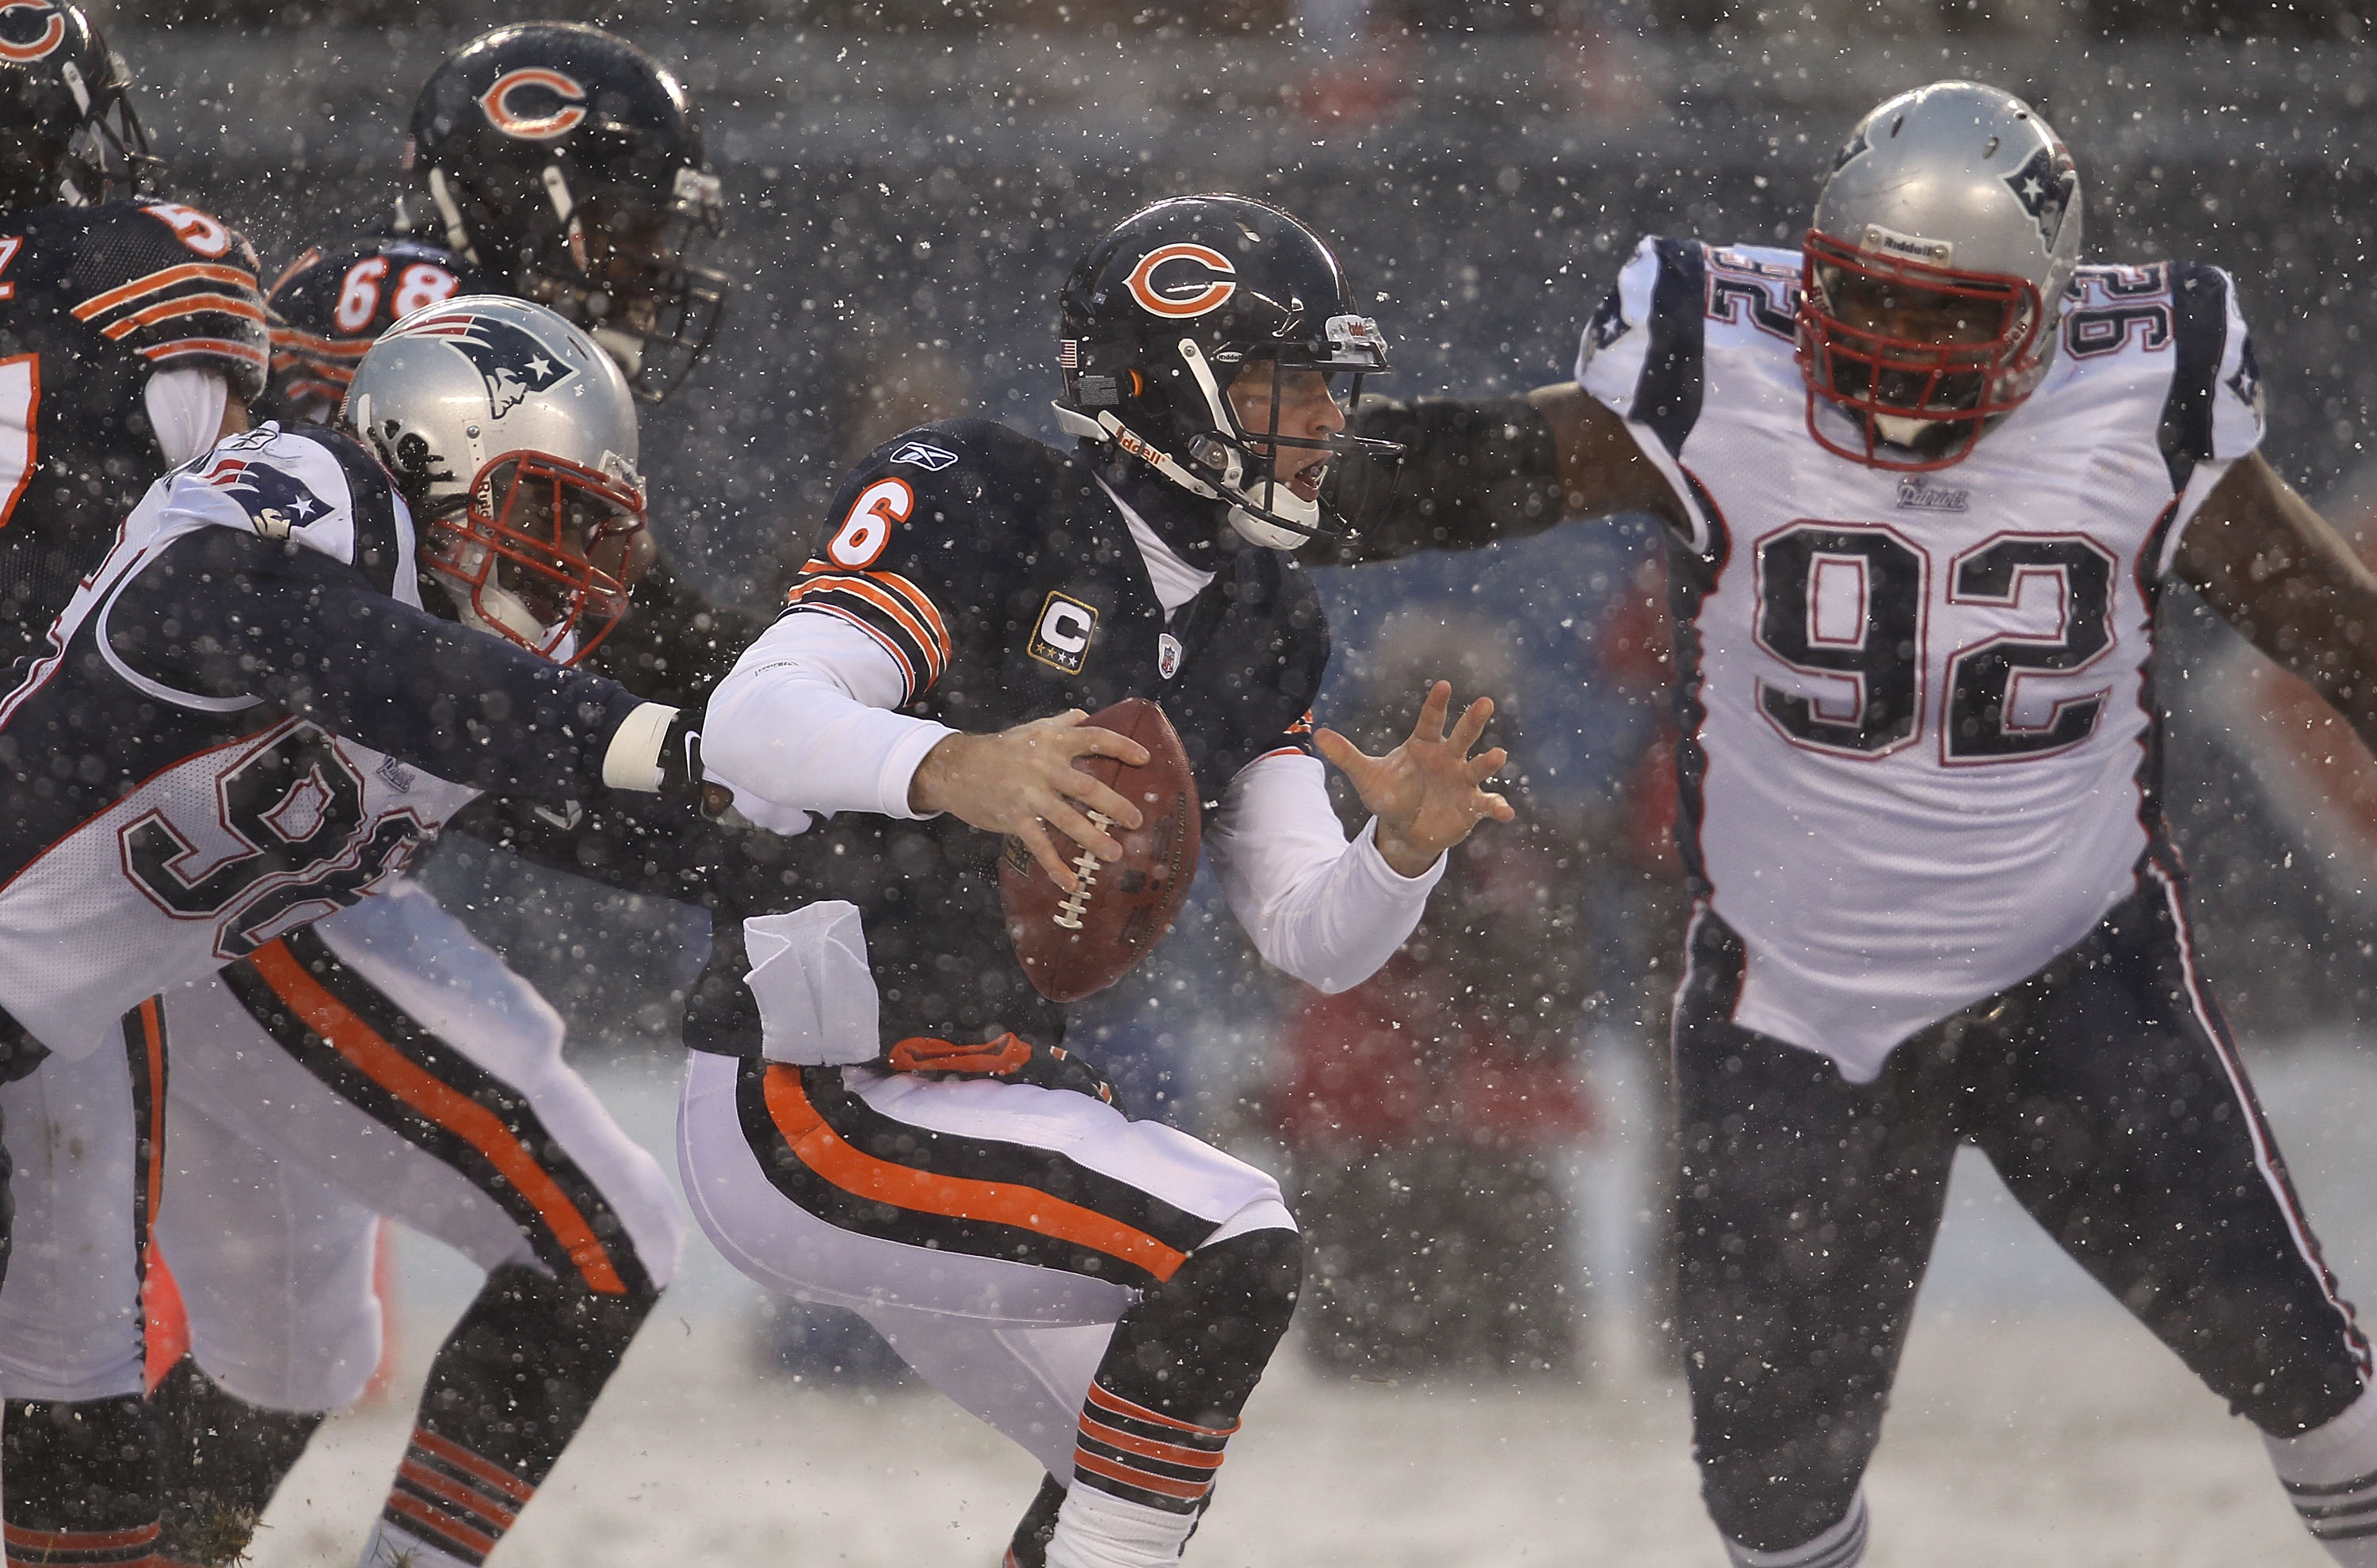 CHICAGO, IL - DECEMBER 12: Jay Cutler #6 of the Chicago Bears tries to avoid Eric Moore #98 and Gerard Warren #92 of the New England Patriots at Soldier Field on December 12, 2010 in Chicago, Illinois.  The Patriots defeated the Bears 36-7.  (Photo by Jon